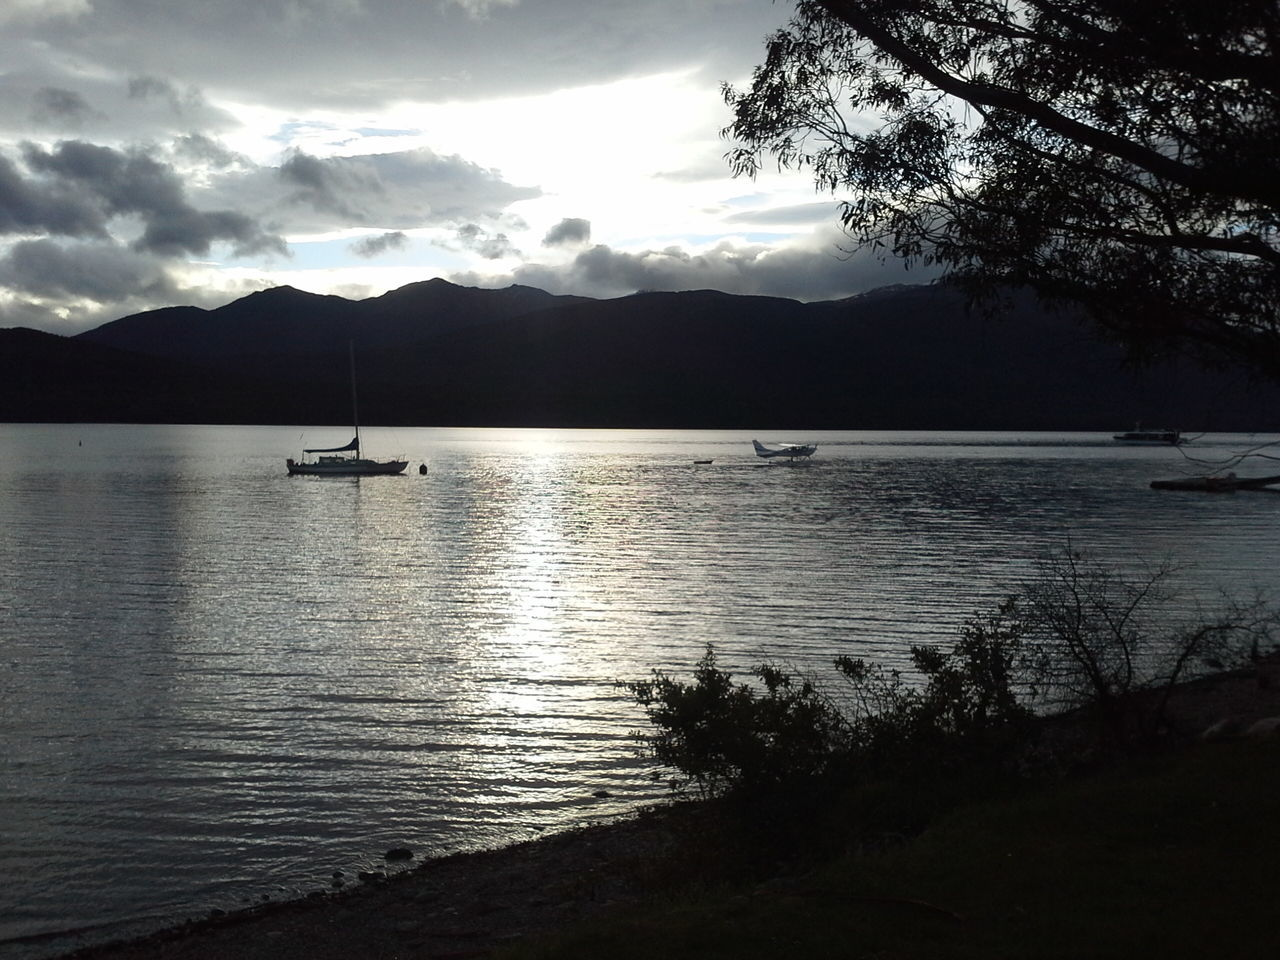 Dusk in Te Anau Relaxing Travel Destinations Travel Photography Beautiful Nature Refelections Tranquility Yacht Seaplane Dusk Sky Dusk EyeEm Nature Lover South Island New Zealand TeAnau Silhouettes